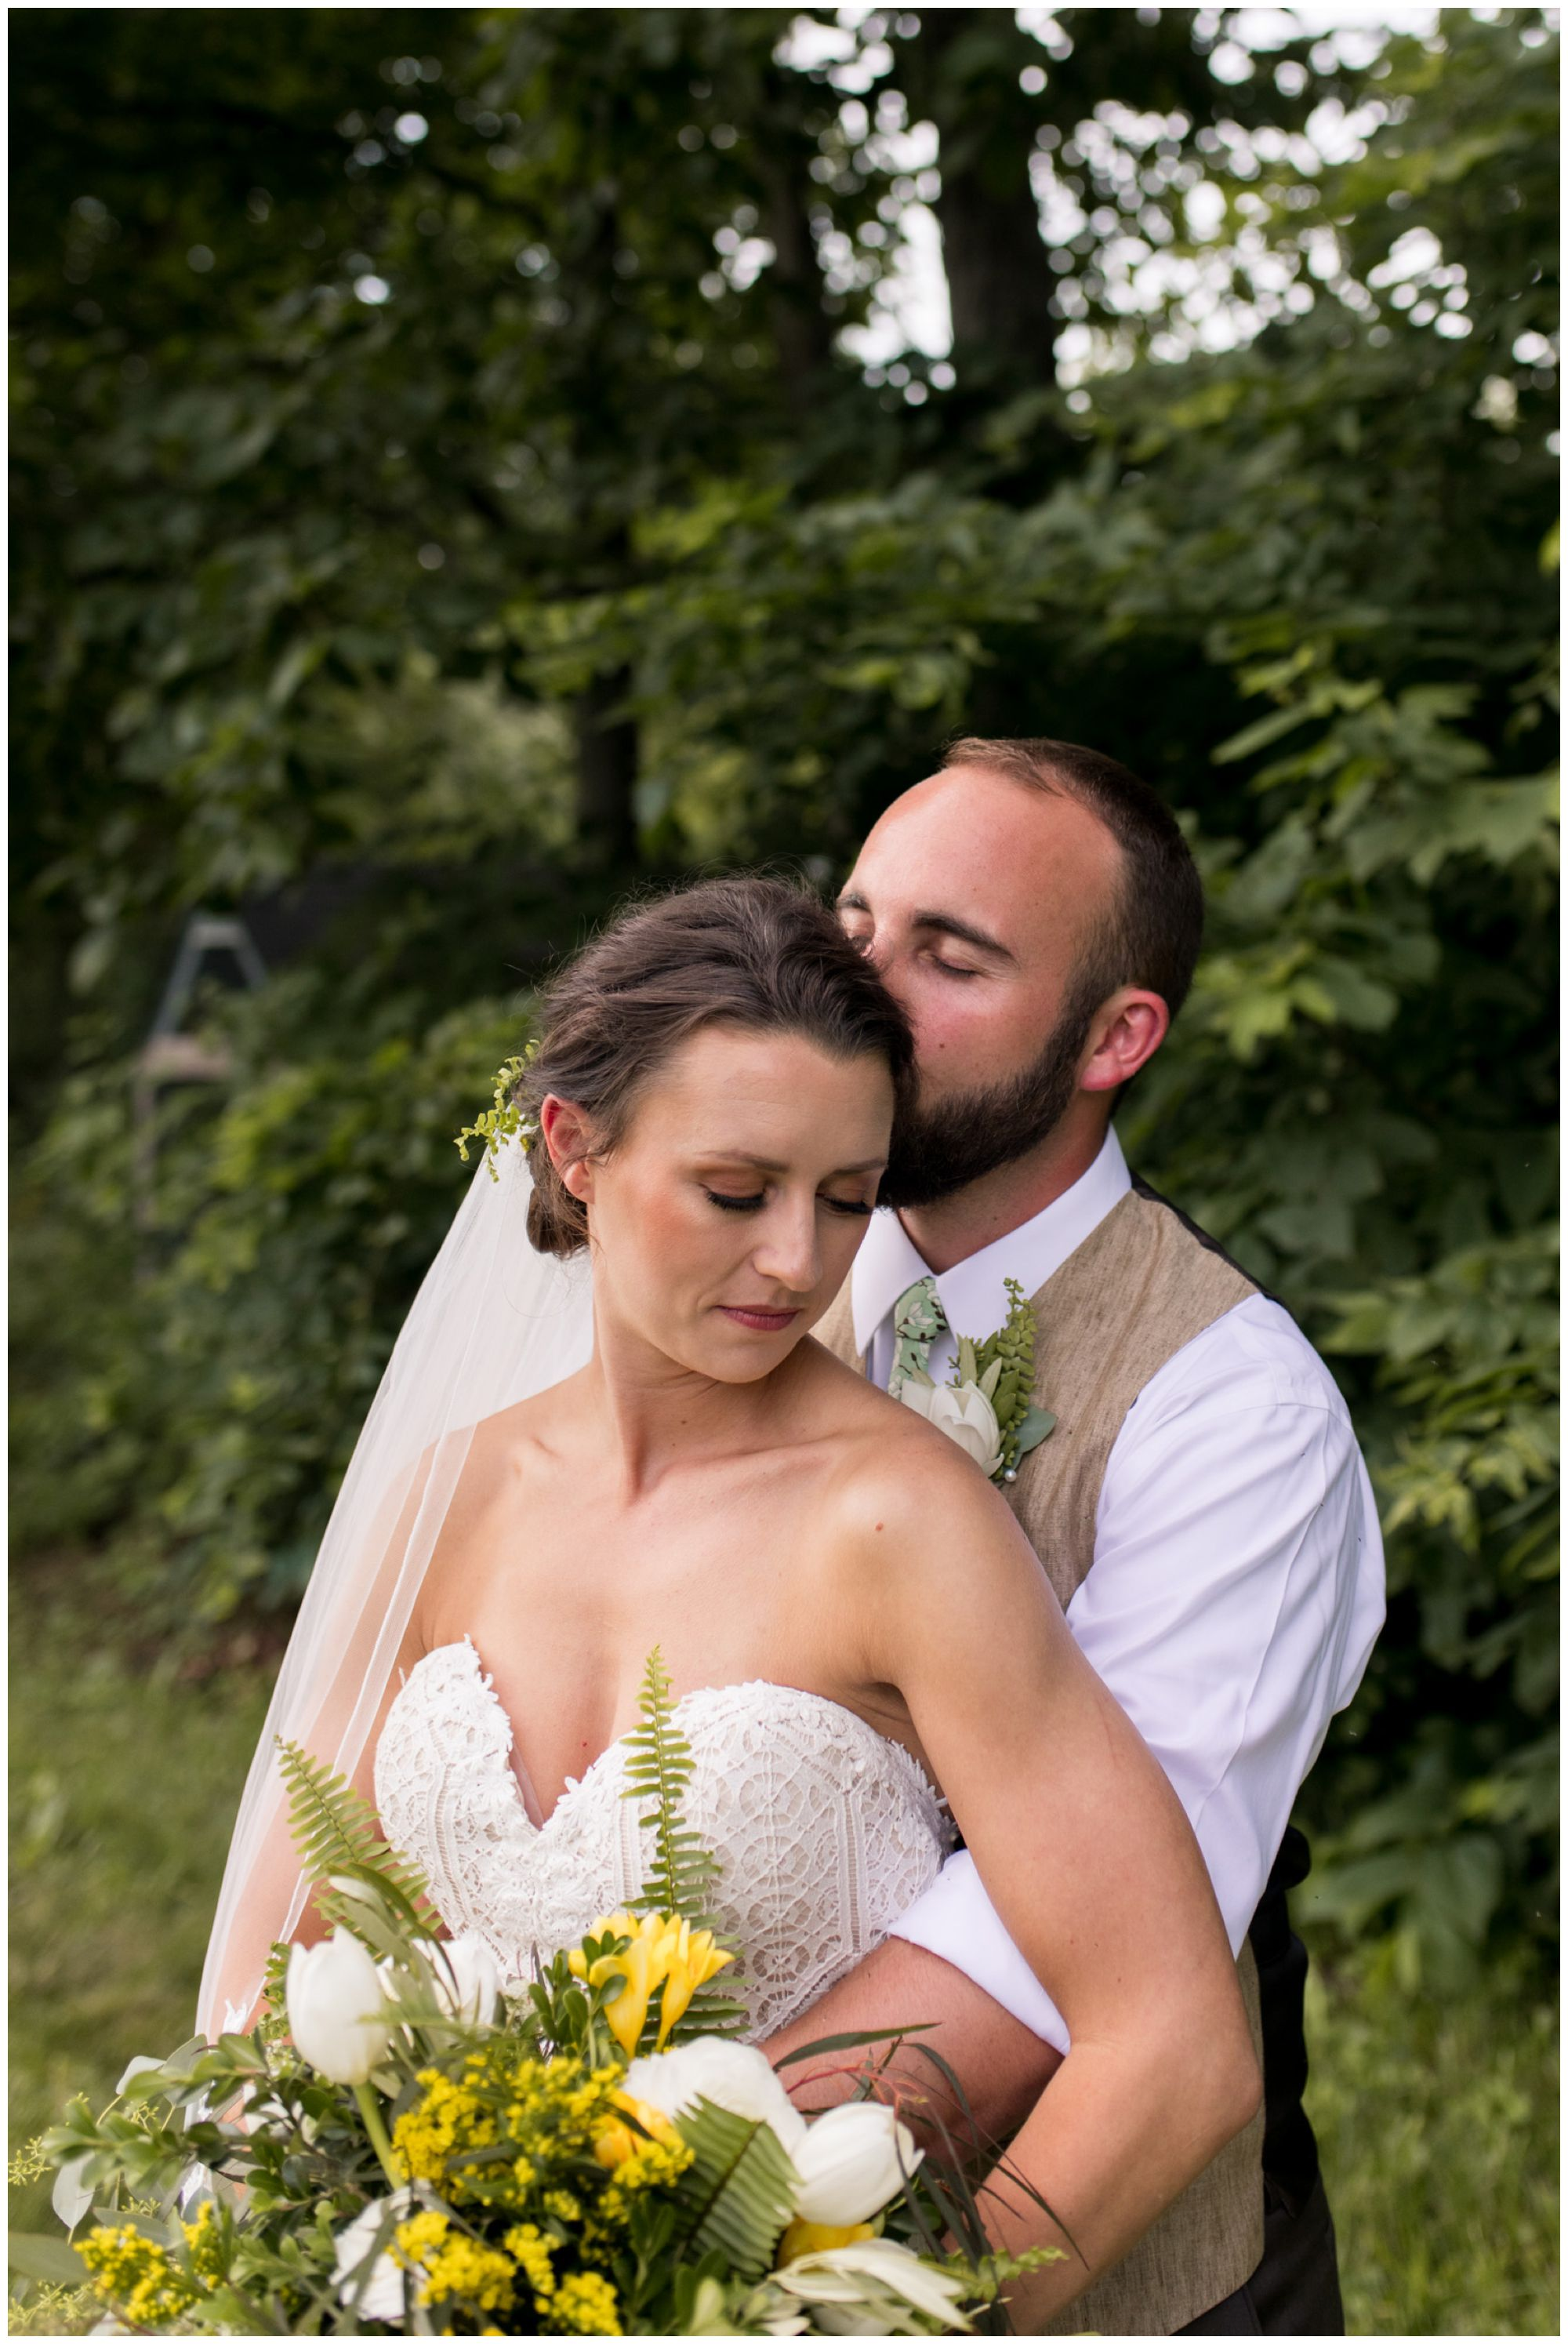 groom holds bride and kisses temple during Indianapolis wedding portraits